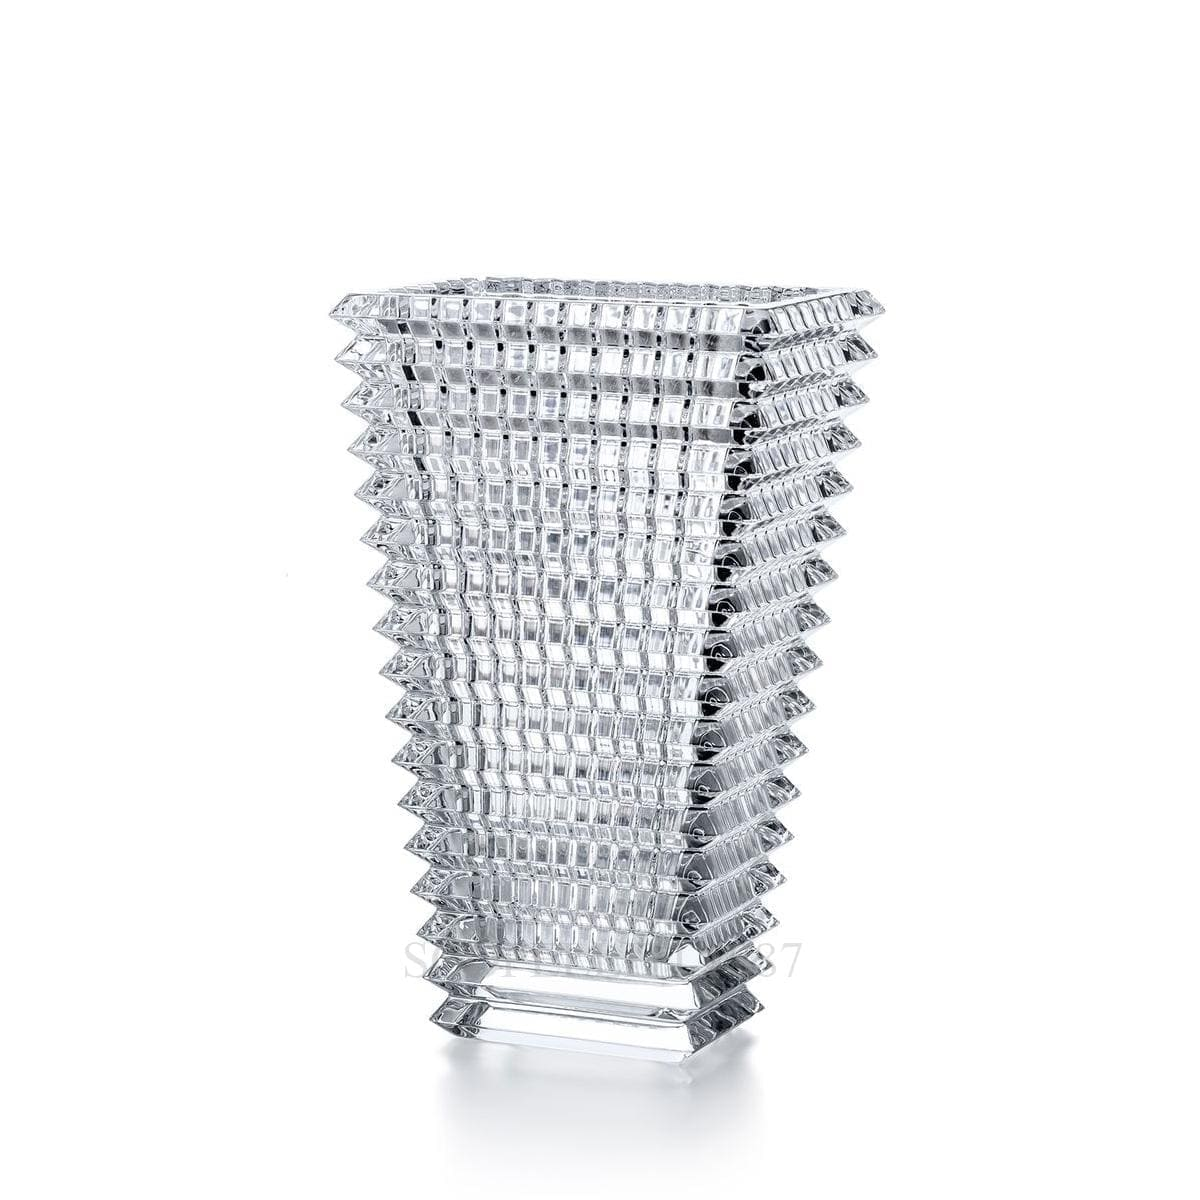 baccarat crystal french design rectangular eye vase